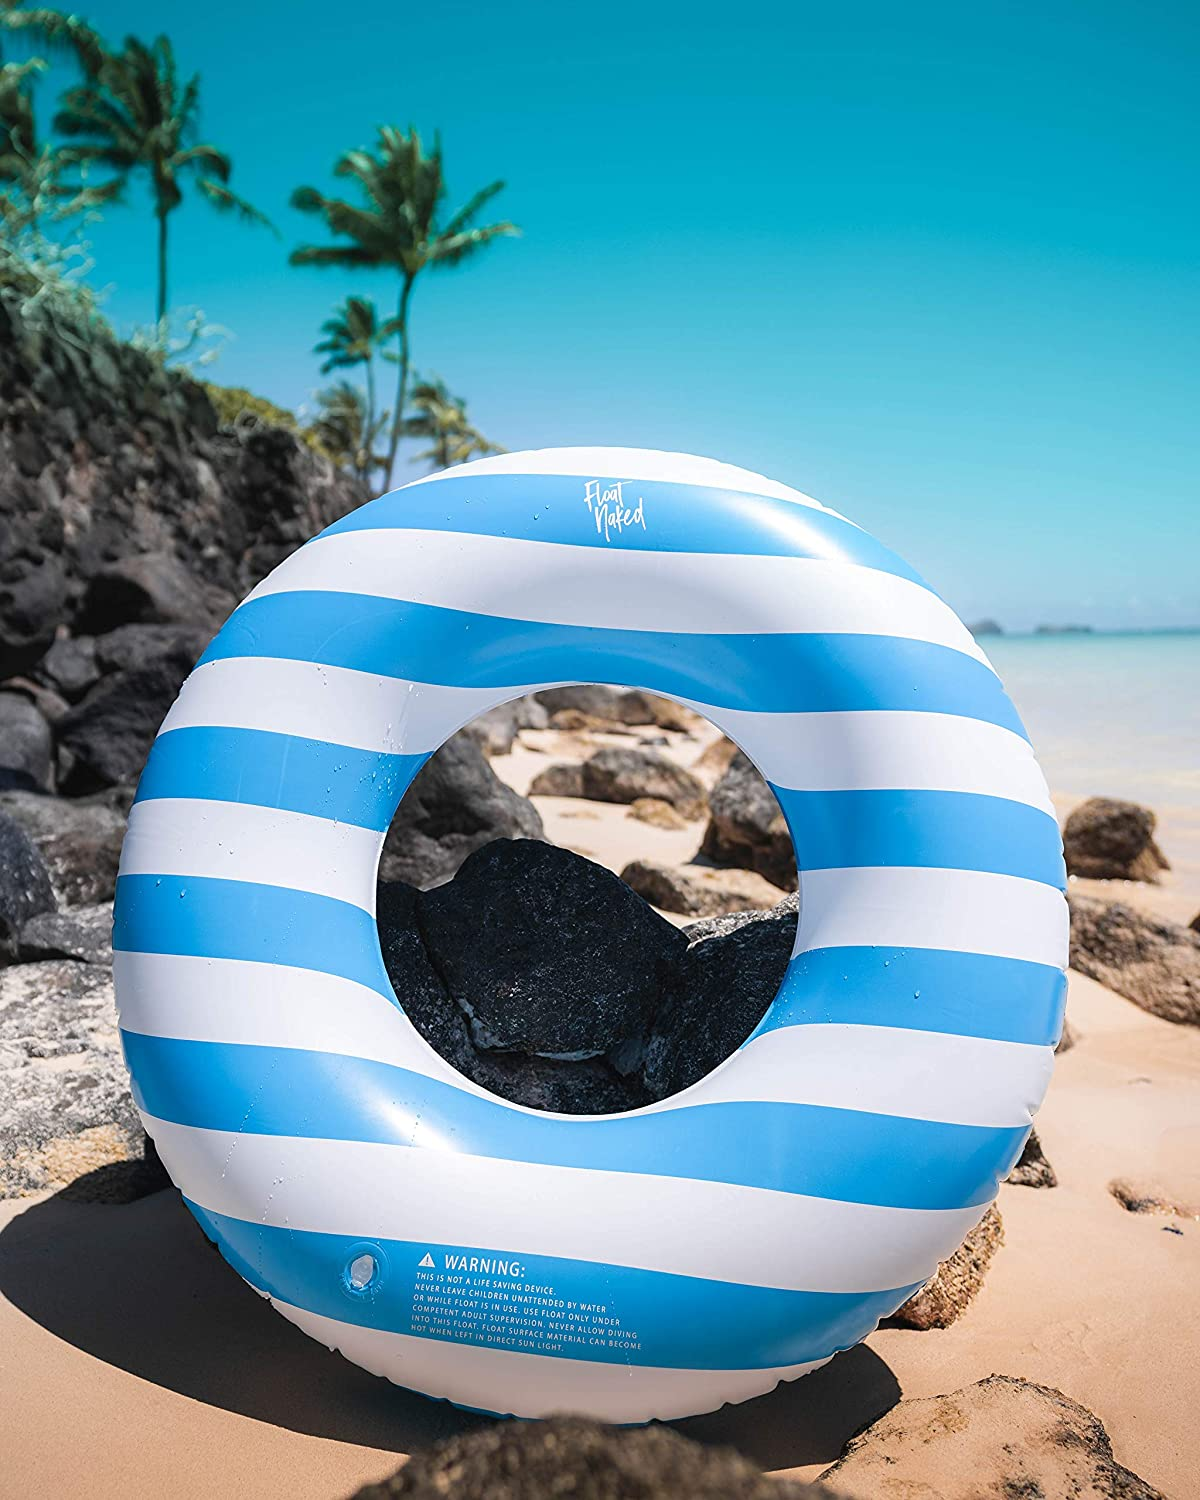 Pool Tubes with Fun Prints Fun Swim Floaties for Adults Great Inner Tube Pool Floaty for All Ages Celebrity-Approved Tubes for Floating Blue Stripe Float Naked